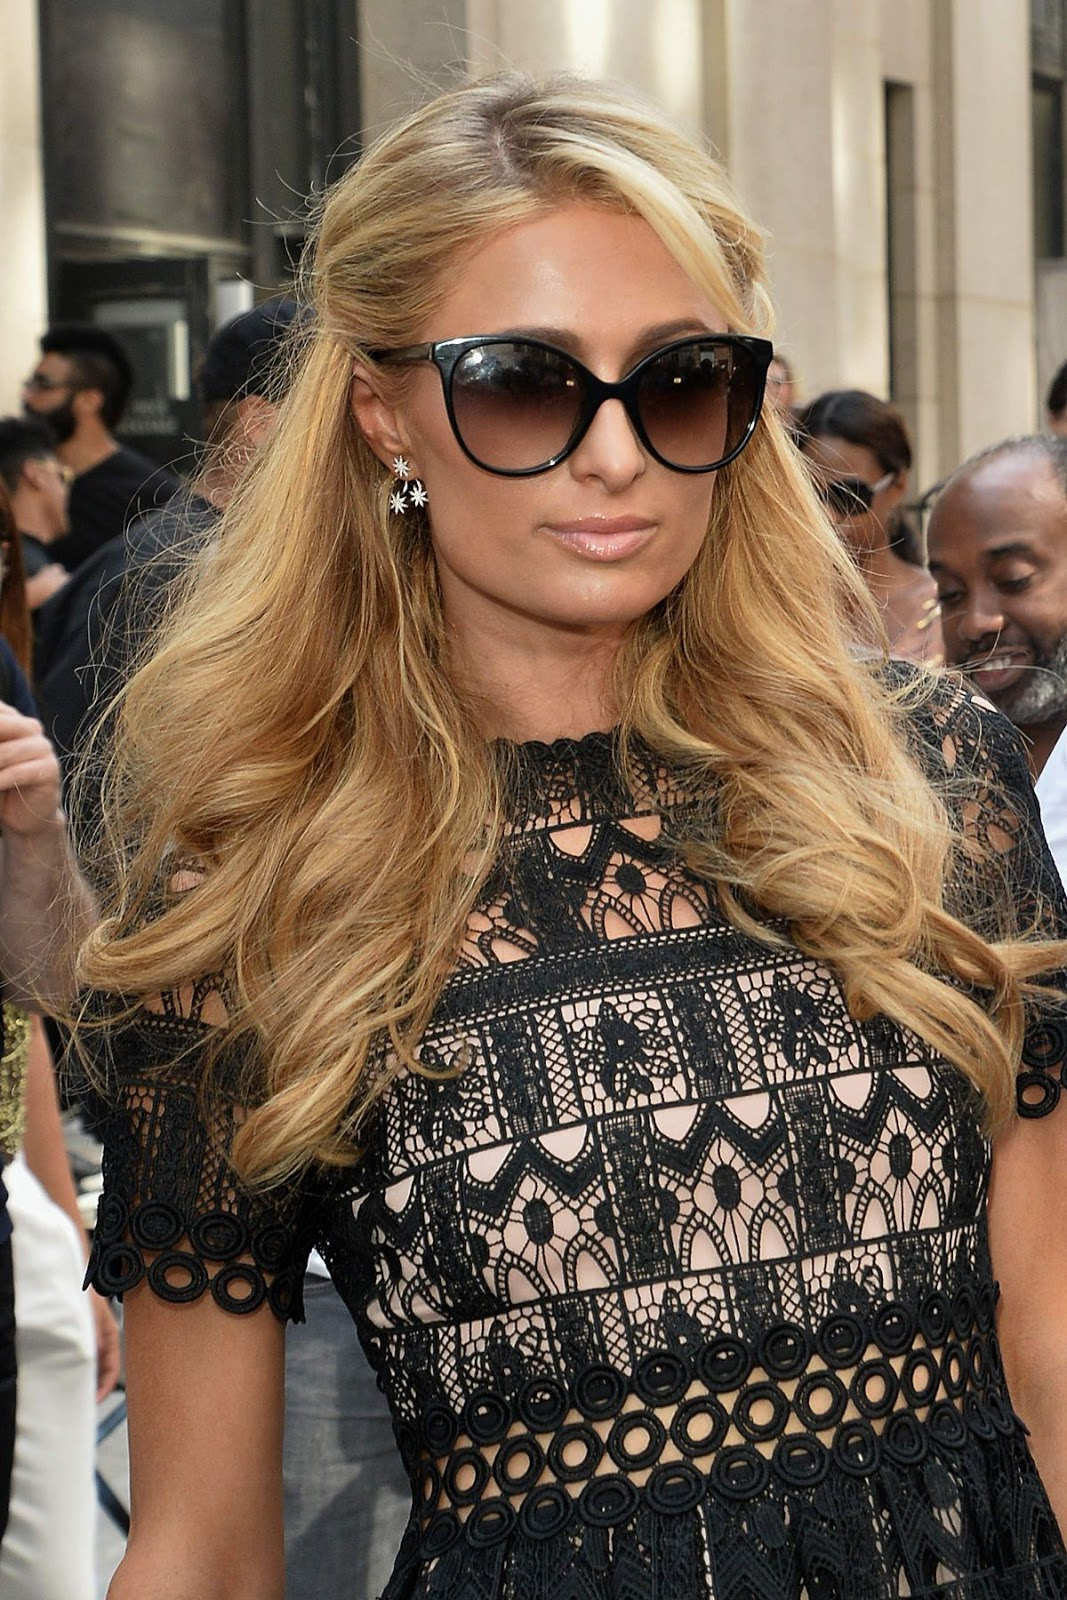 HQ Photos of Paris Hilton in Black dress Out And About In New York